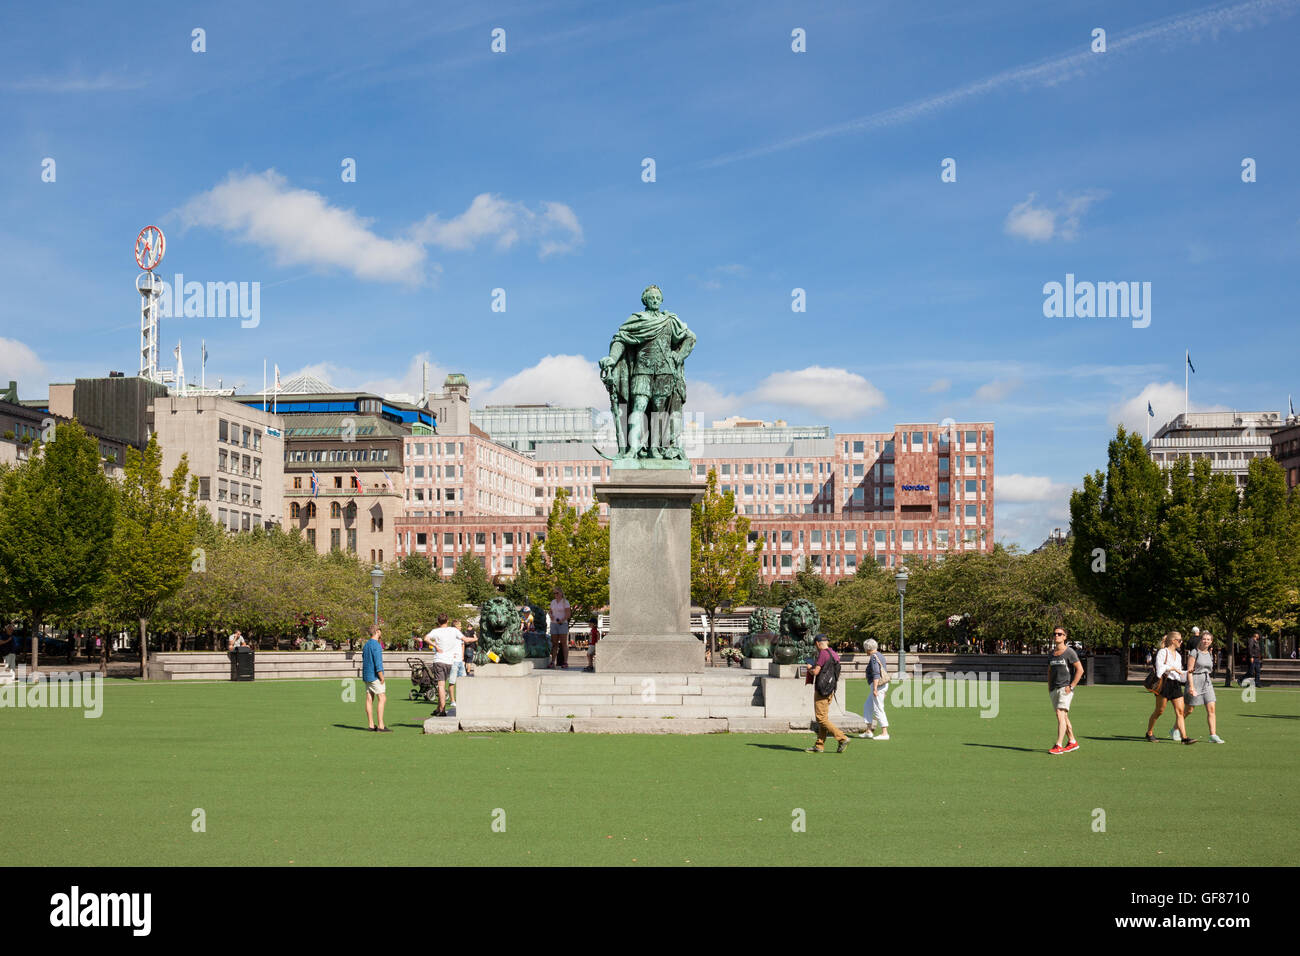 Stockholm, Sweden - Jul 27, 2016 : Front view of the Karl XIII, Charles XIII, statue at the Kungstradgarden, Stockholm